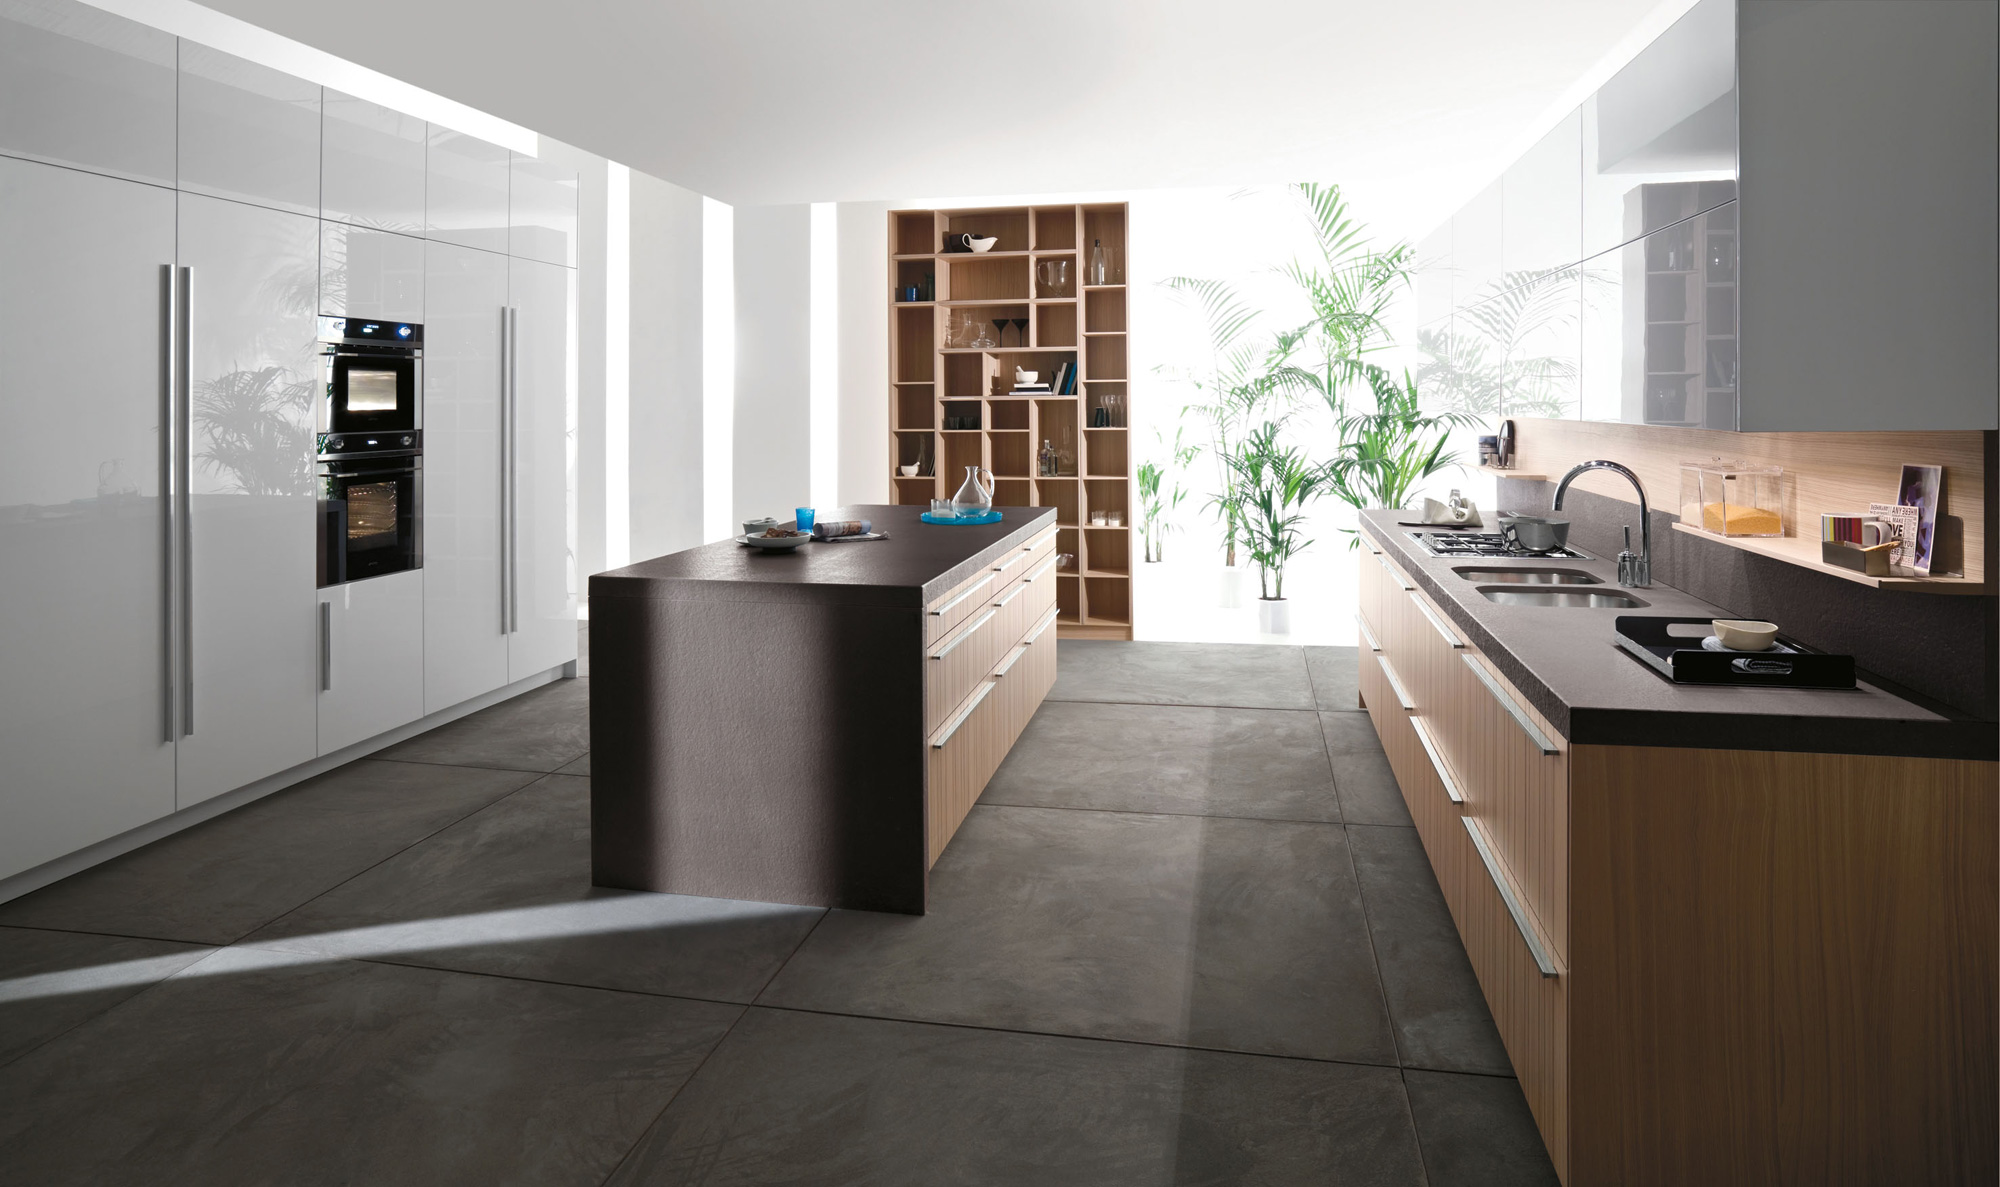 concrete floor kitchen concrete kitchen floor concrete floor kitchen